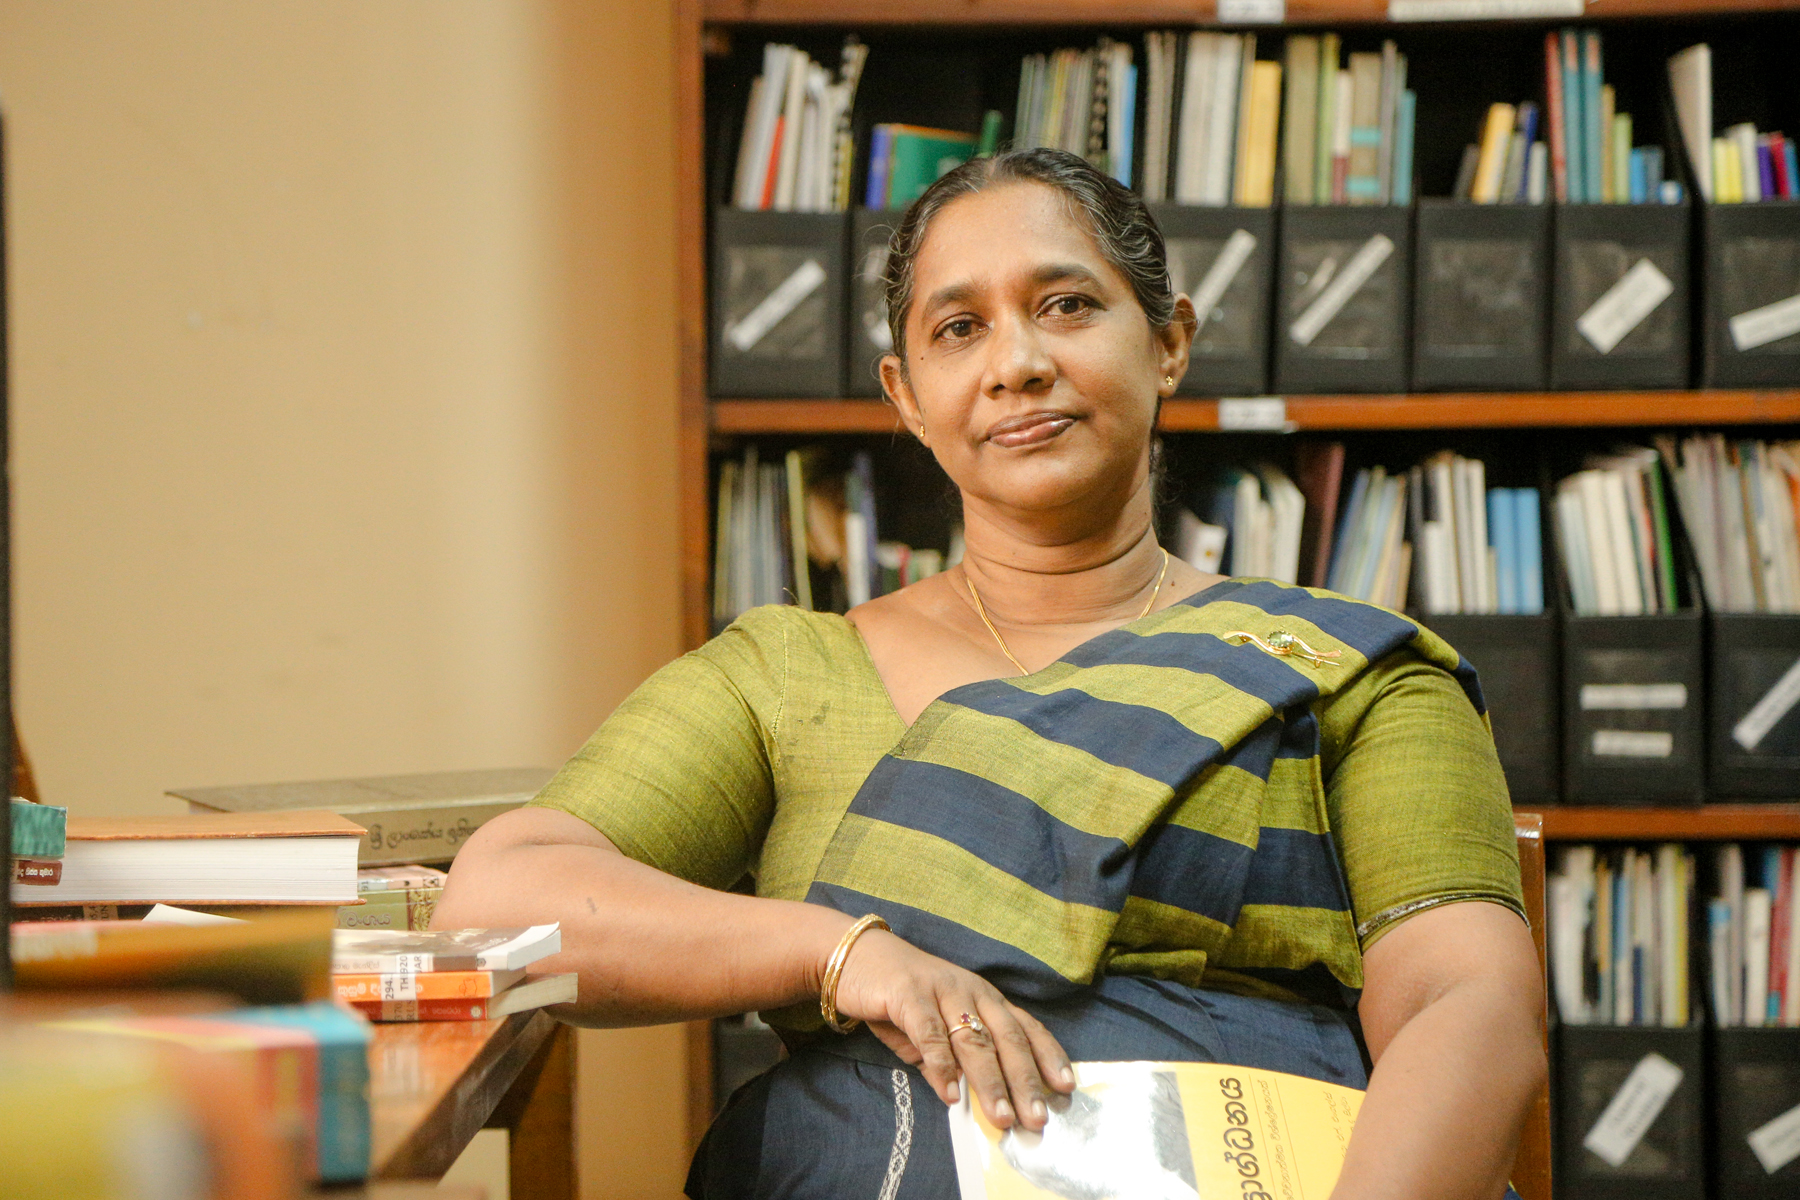 Ms. D.K. Manatunga